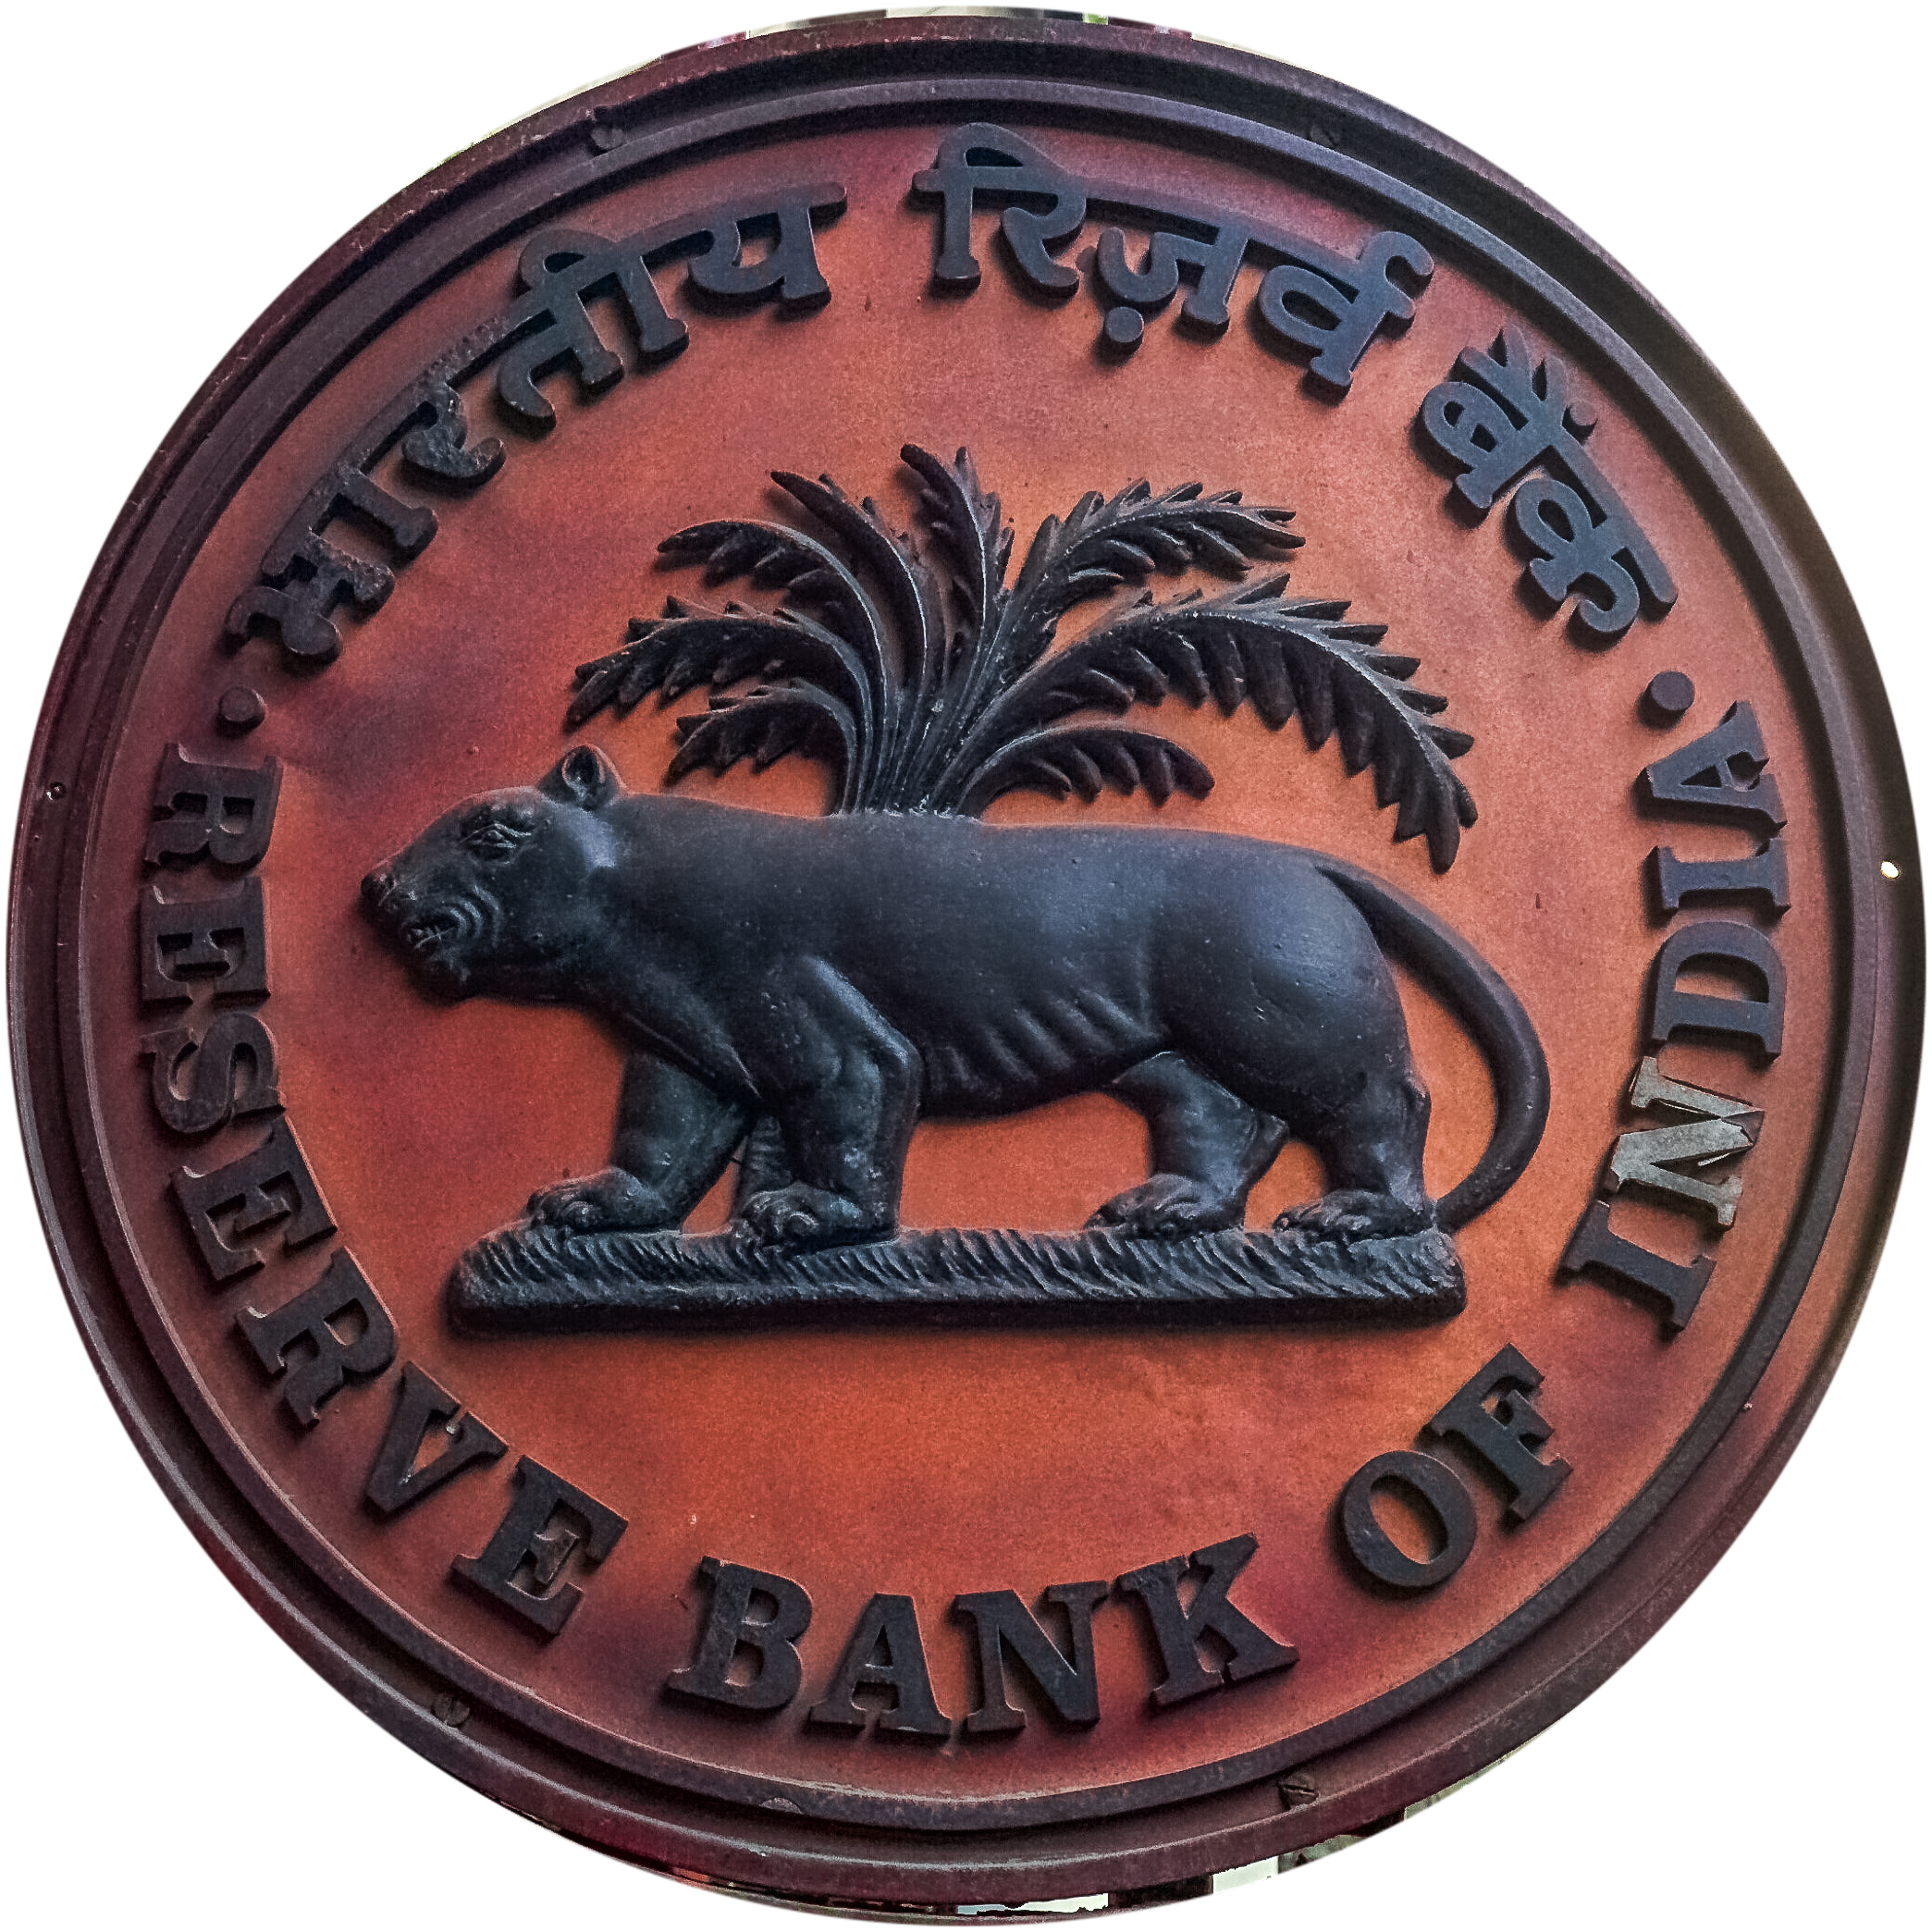 Retail inflation spike in May might cause RBI to revisit focus on growth risks: Oxford Economics